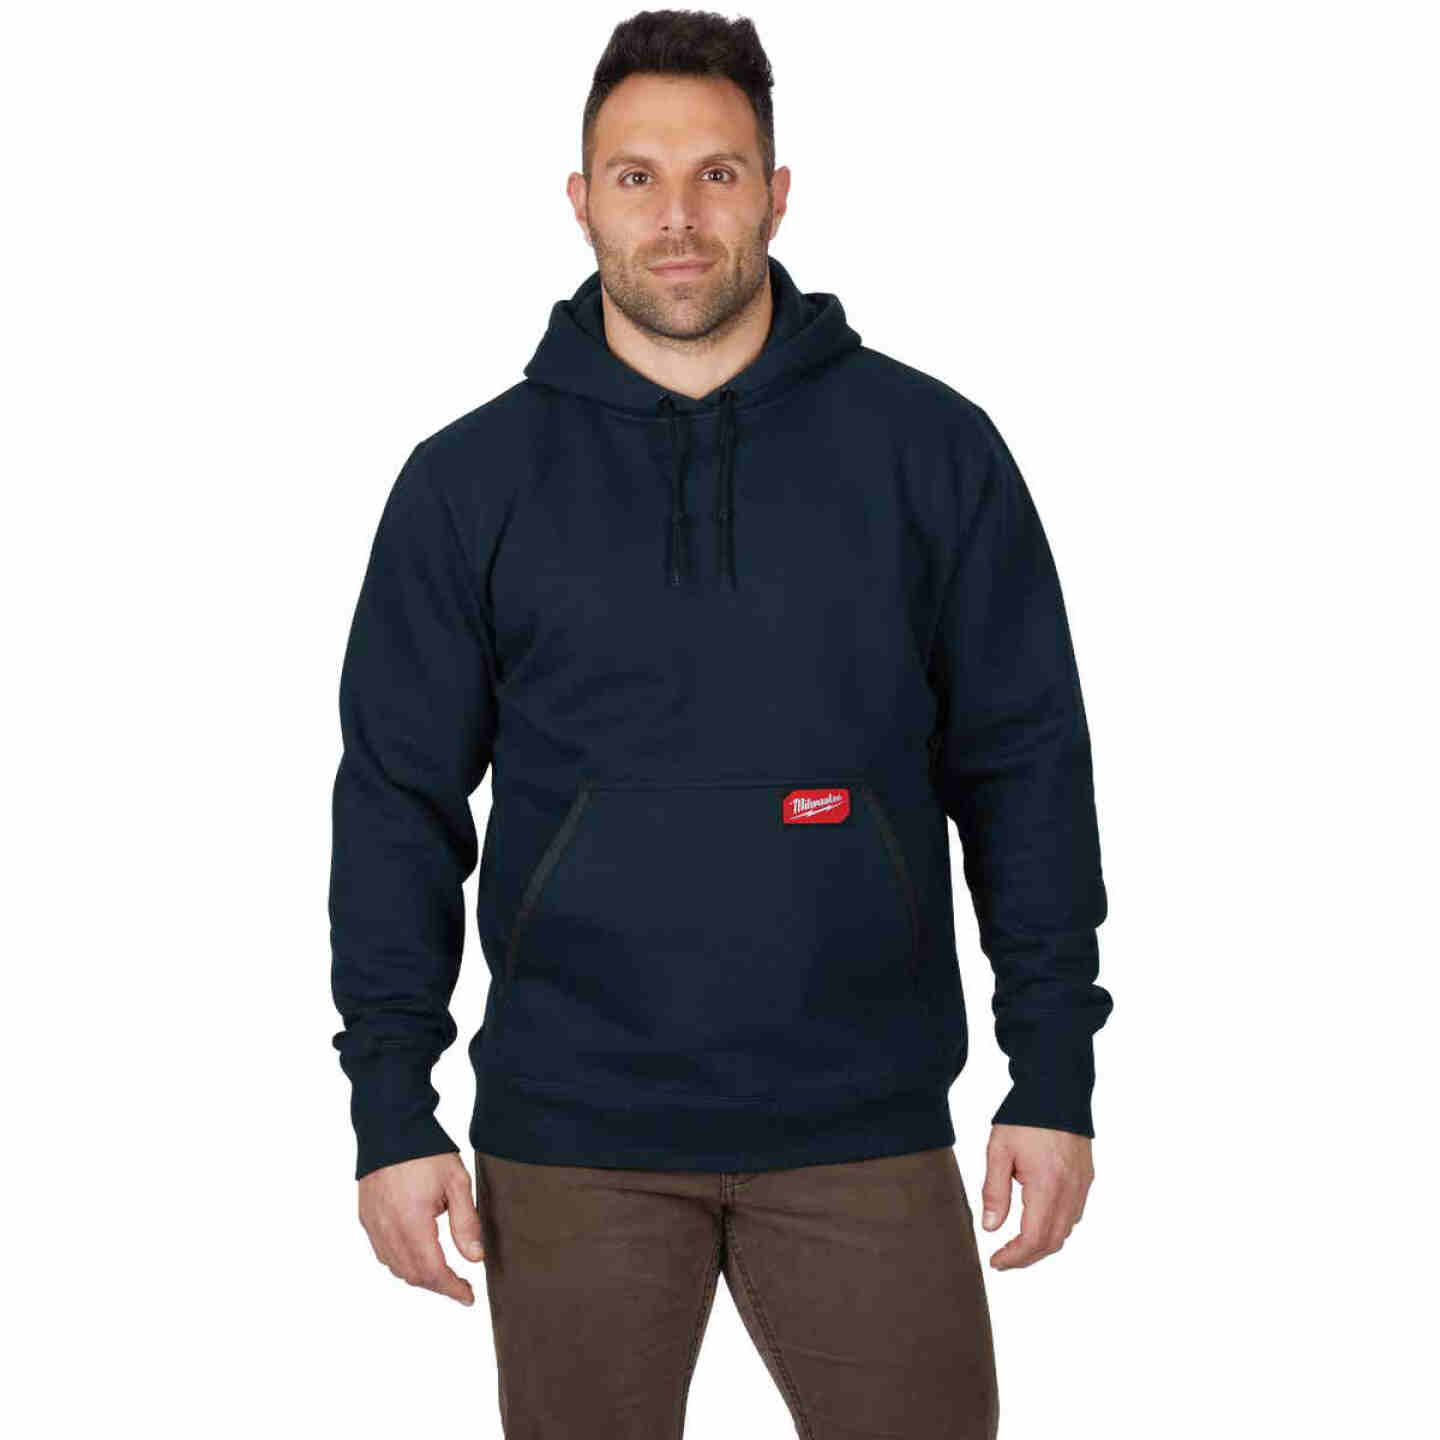 Milwaukee XL Navy Blue Heavy-Duty Pullover Hooded Sweatshirt Image 2